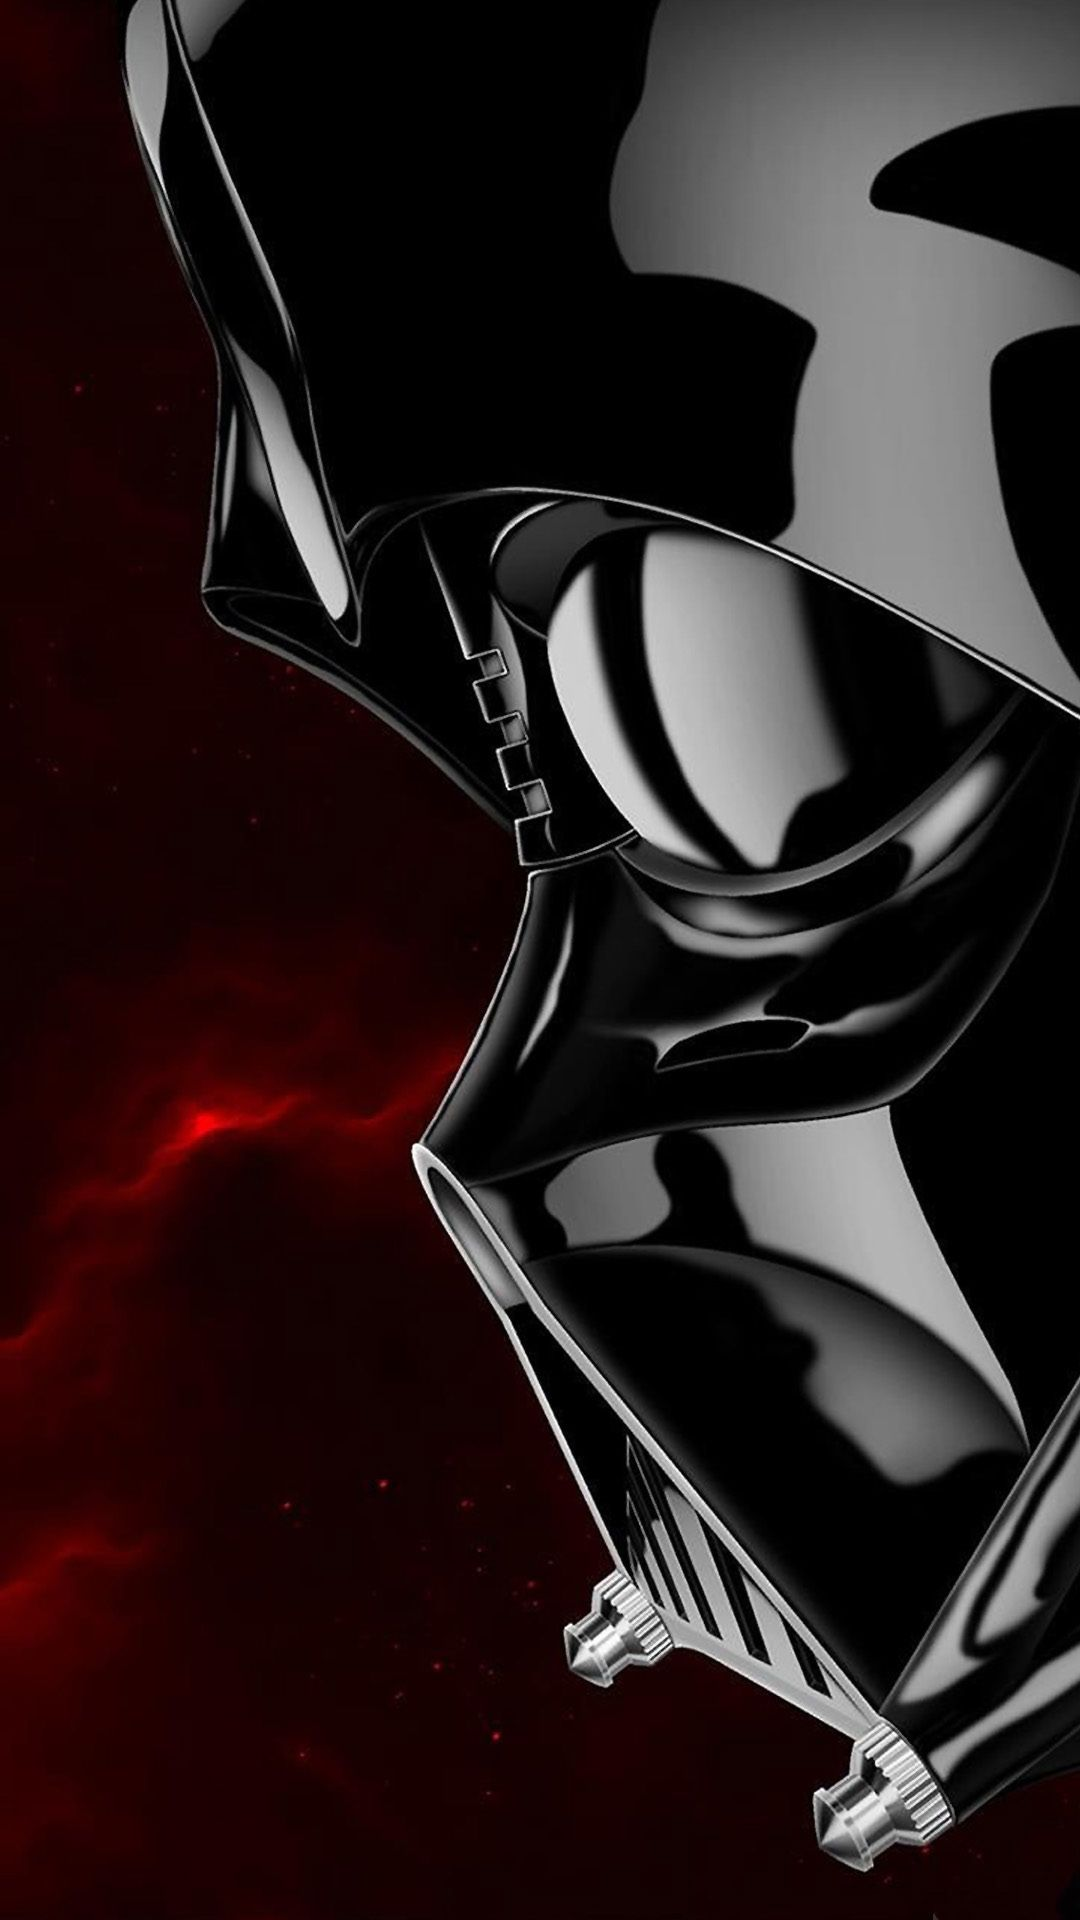 star wars - mobile wallpapers - imgur | star wars | pinterest